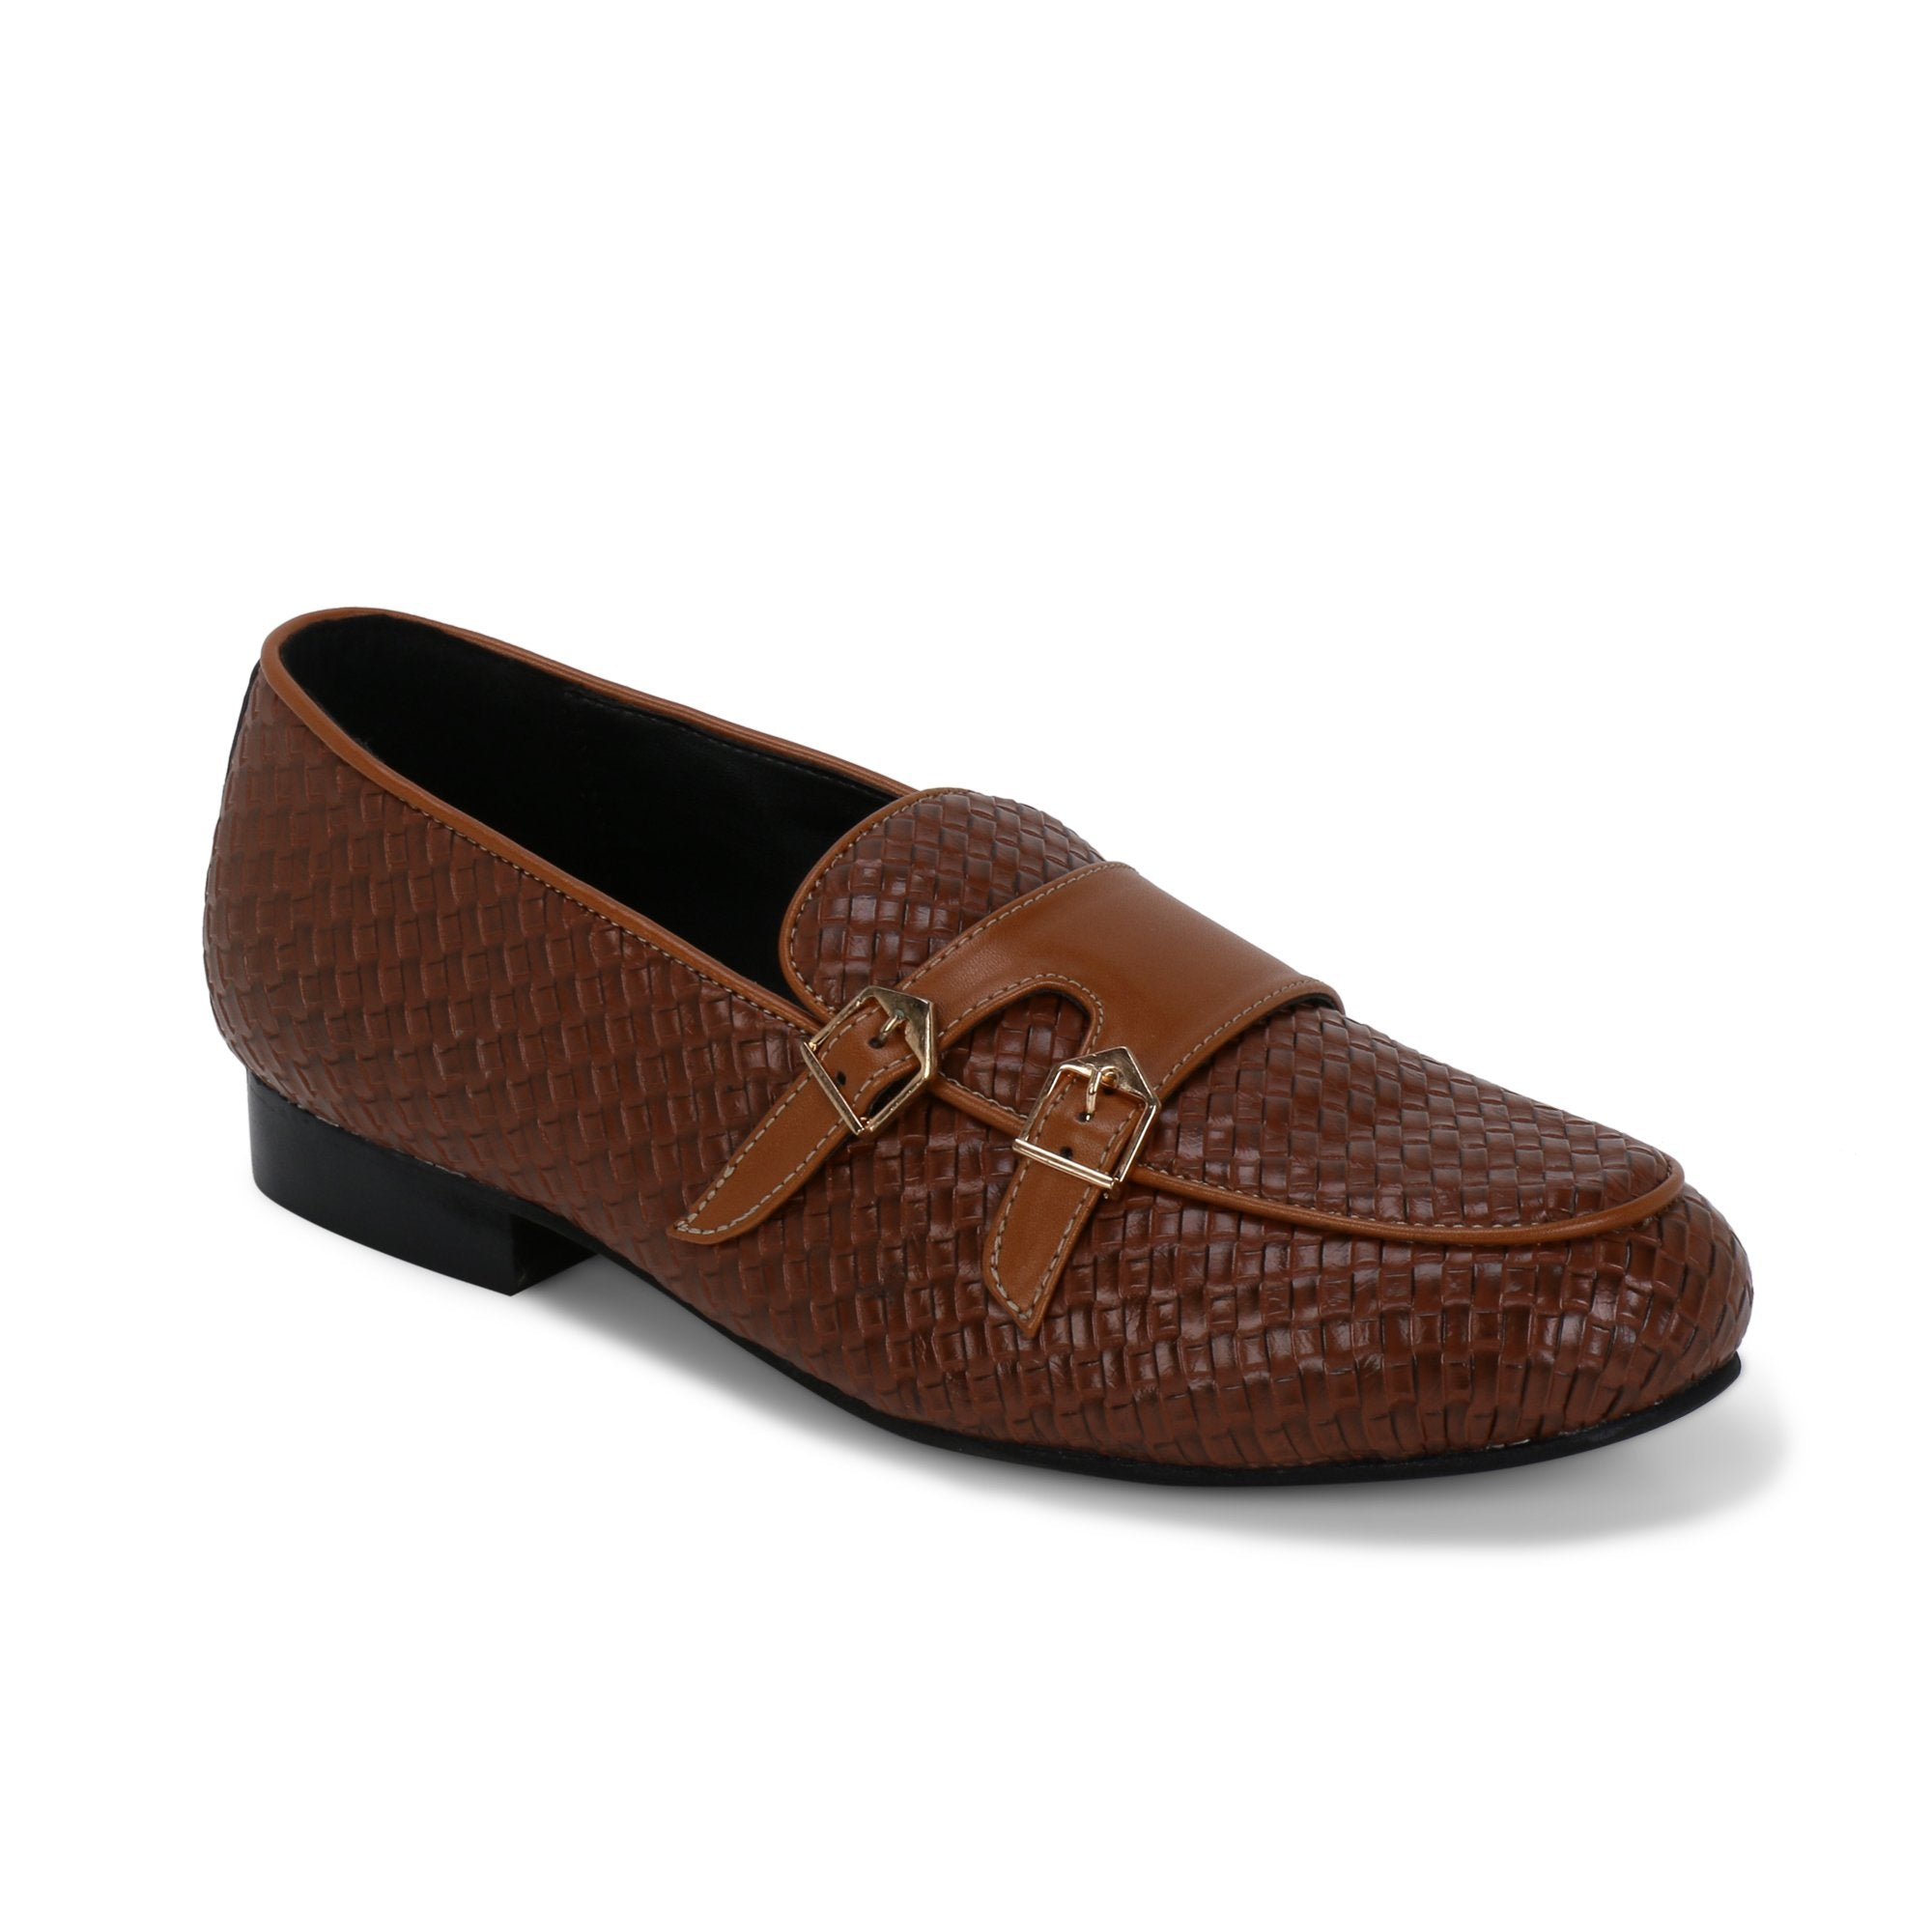 BELLO TAN BRAIDED DOUBLE MONK LOAFERS